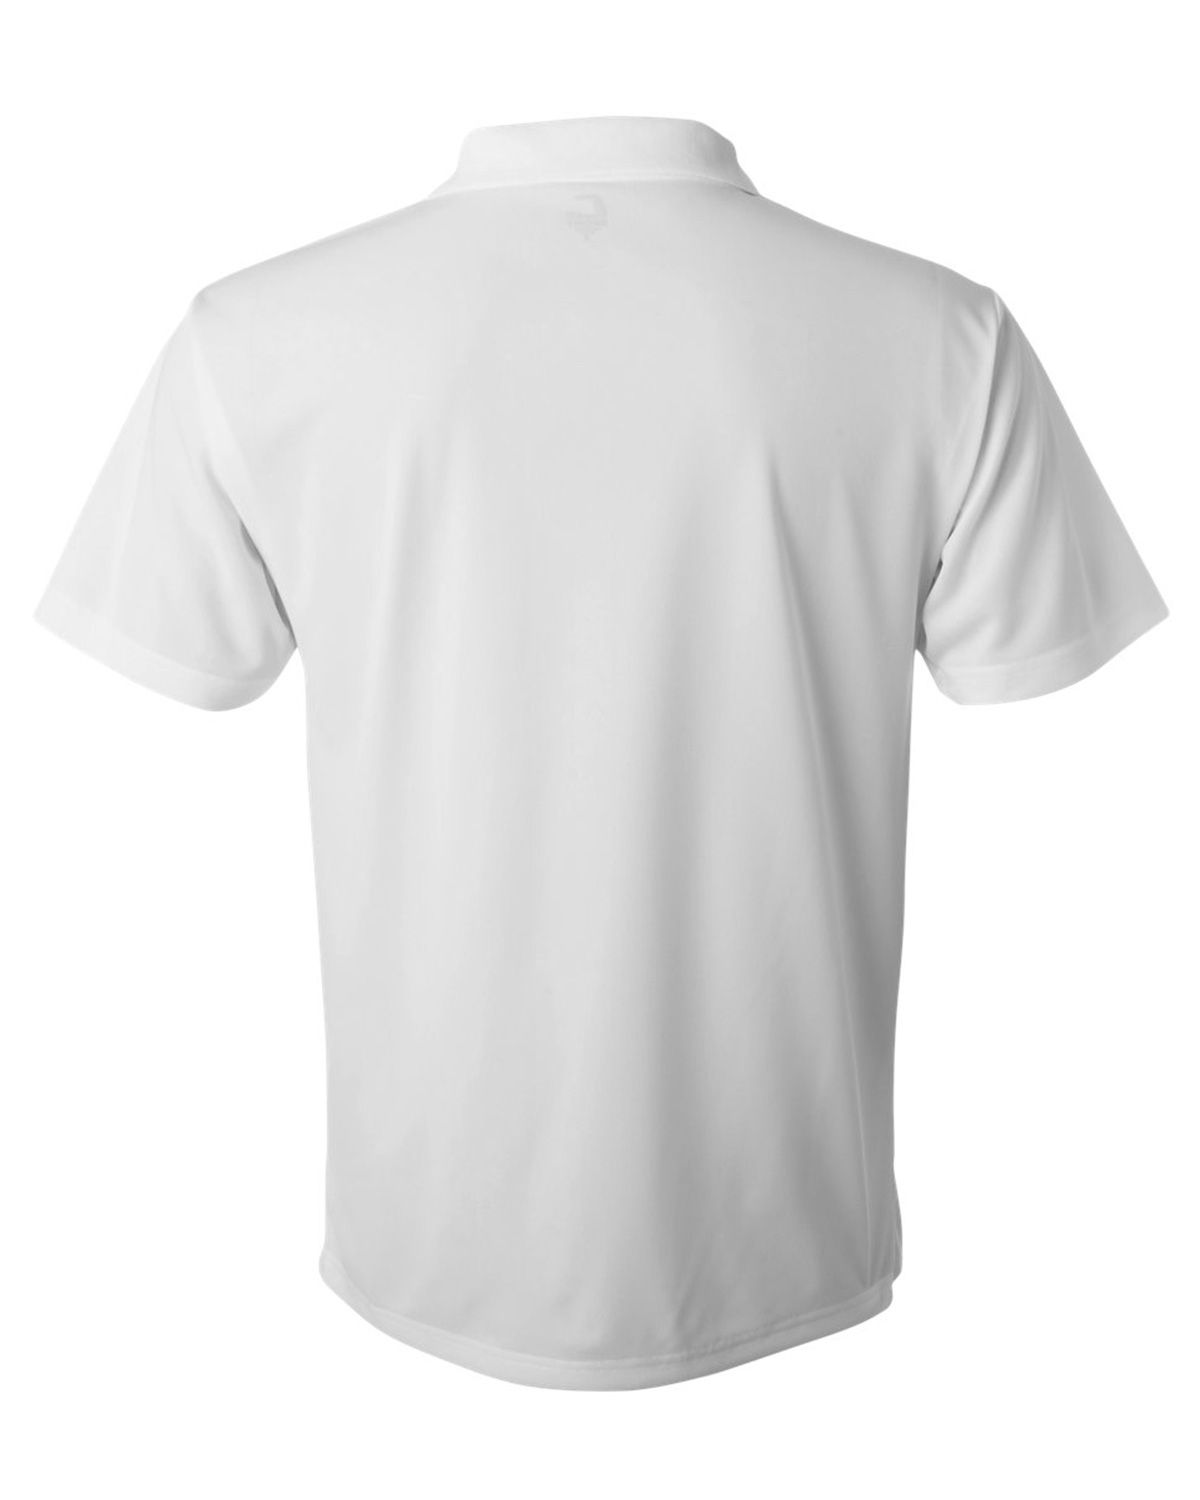 0fa50d20c Wholesale Blank Apparel and T-Shirts - ApparelnBags.com